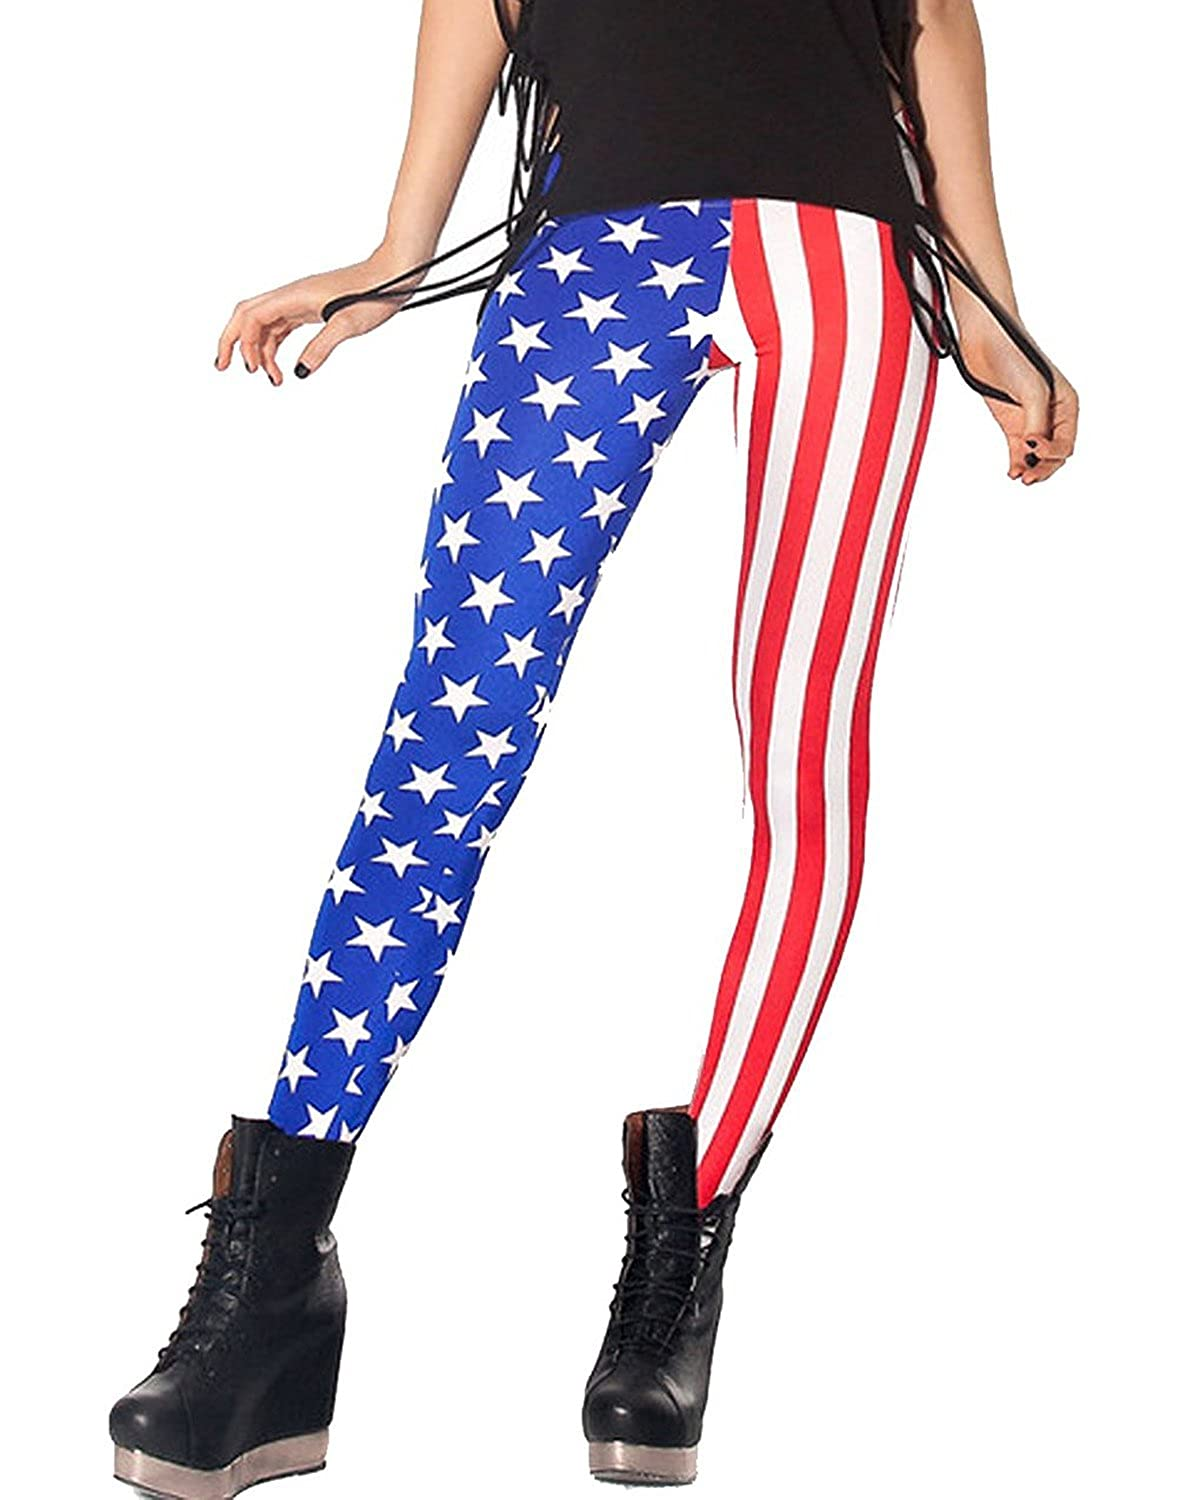 American Trends Women's Fashion Pattern Leggings Colorful Stretch Tight Pants ACAS0122L01FS